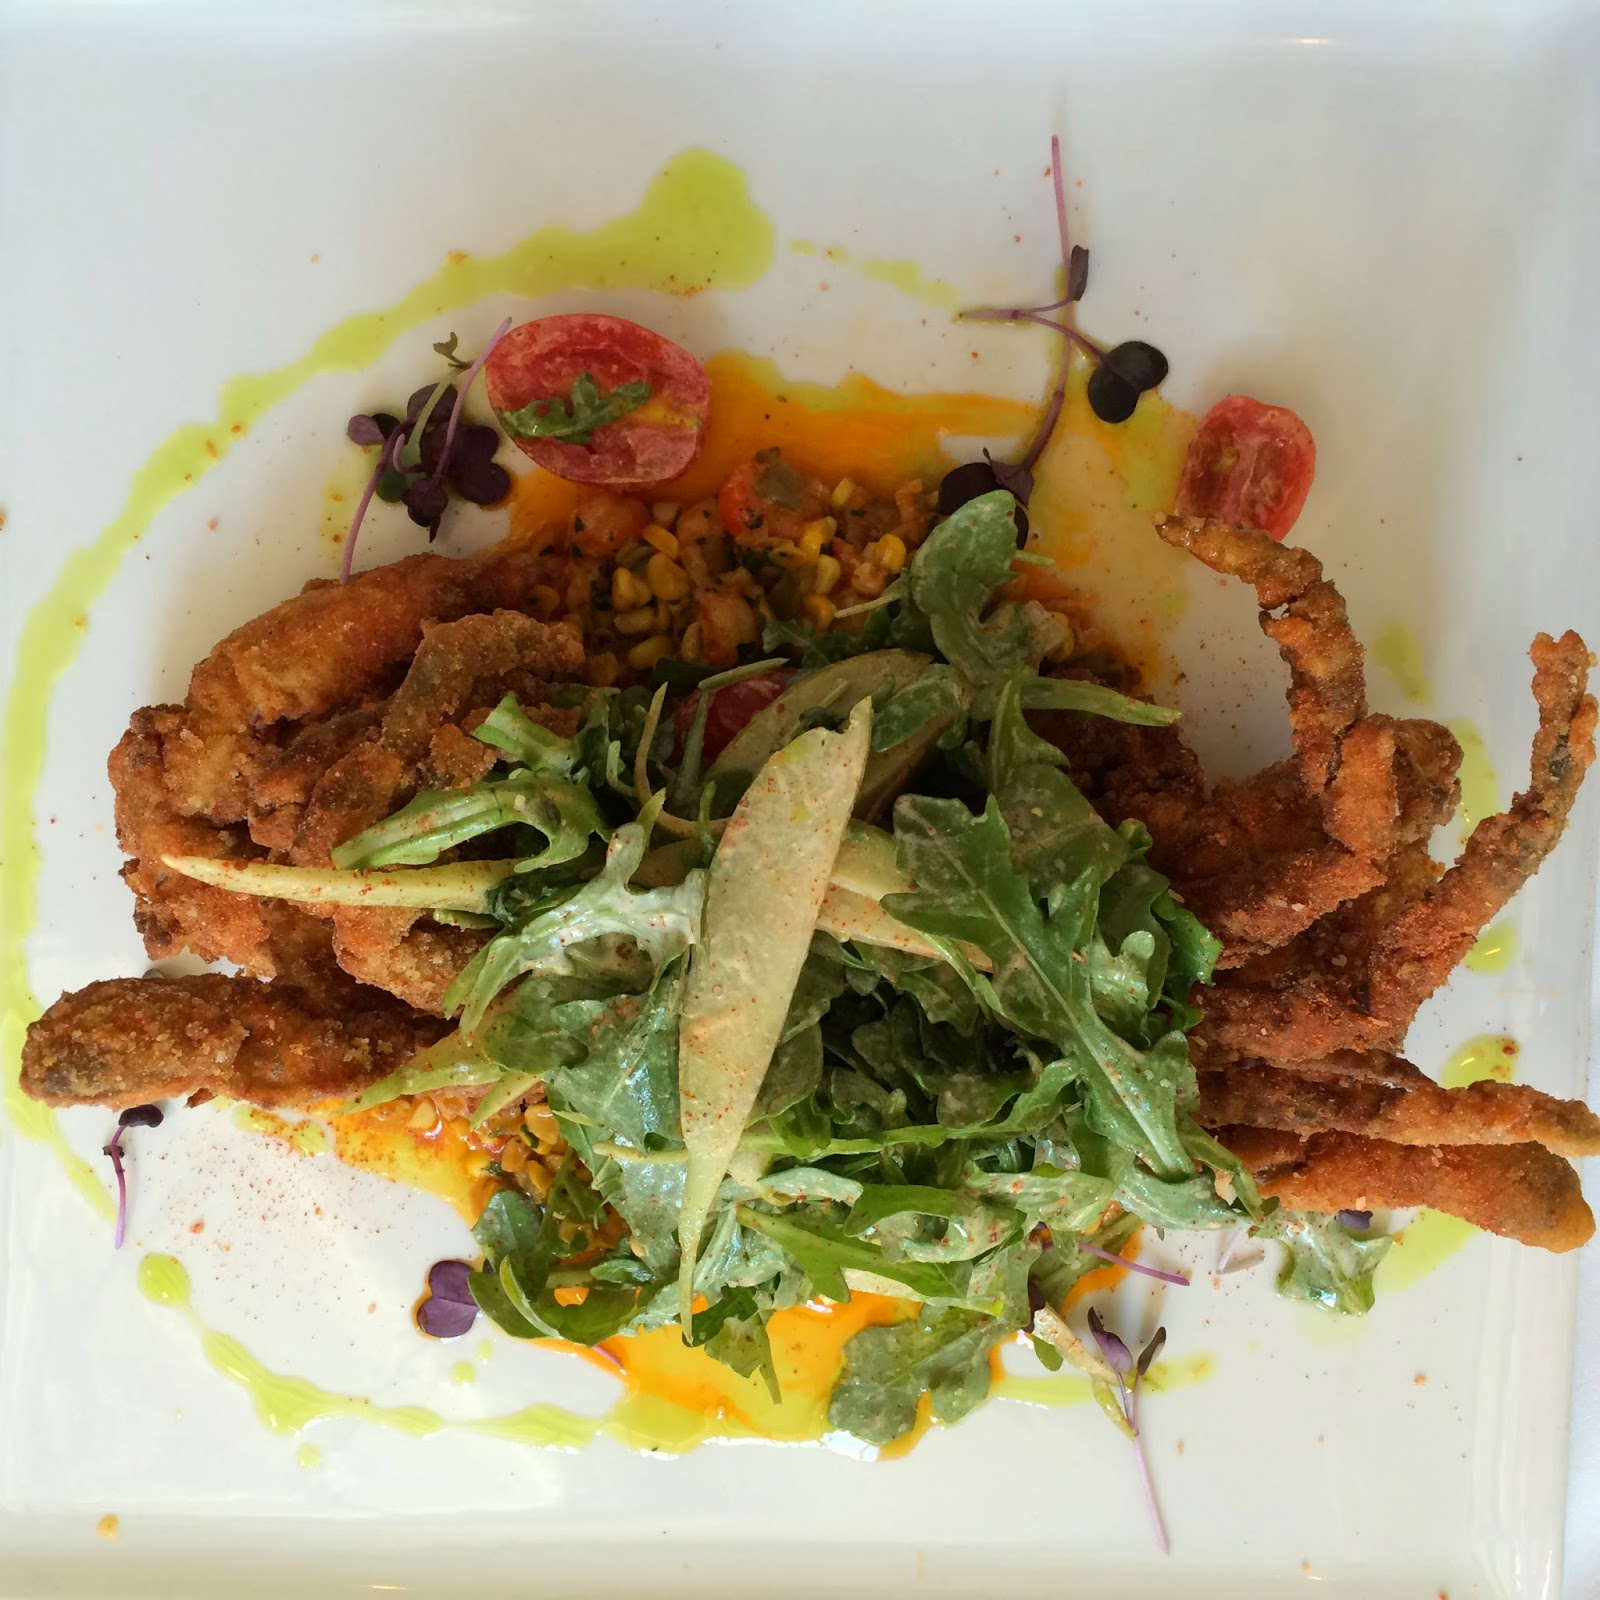 Louisiana Soft Shell Crab Crusted in Cornmeal